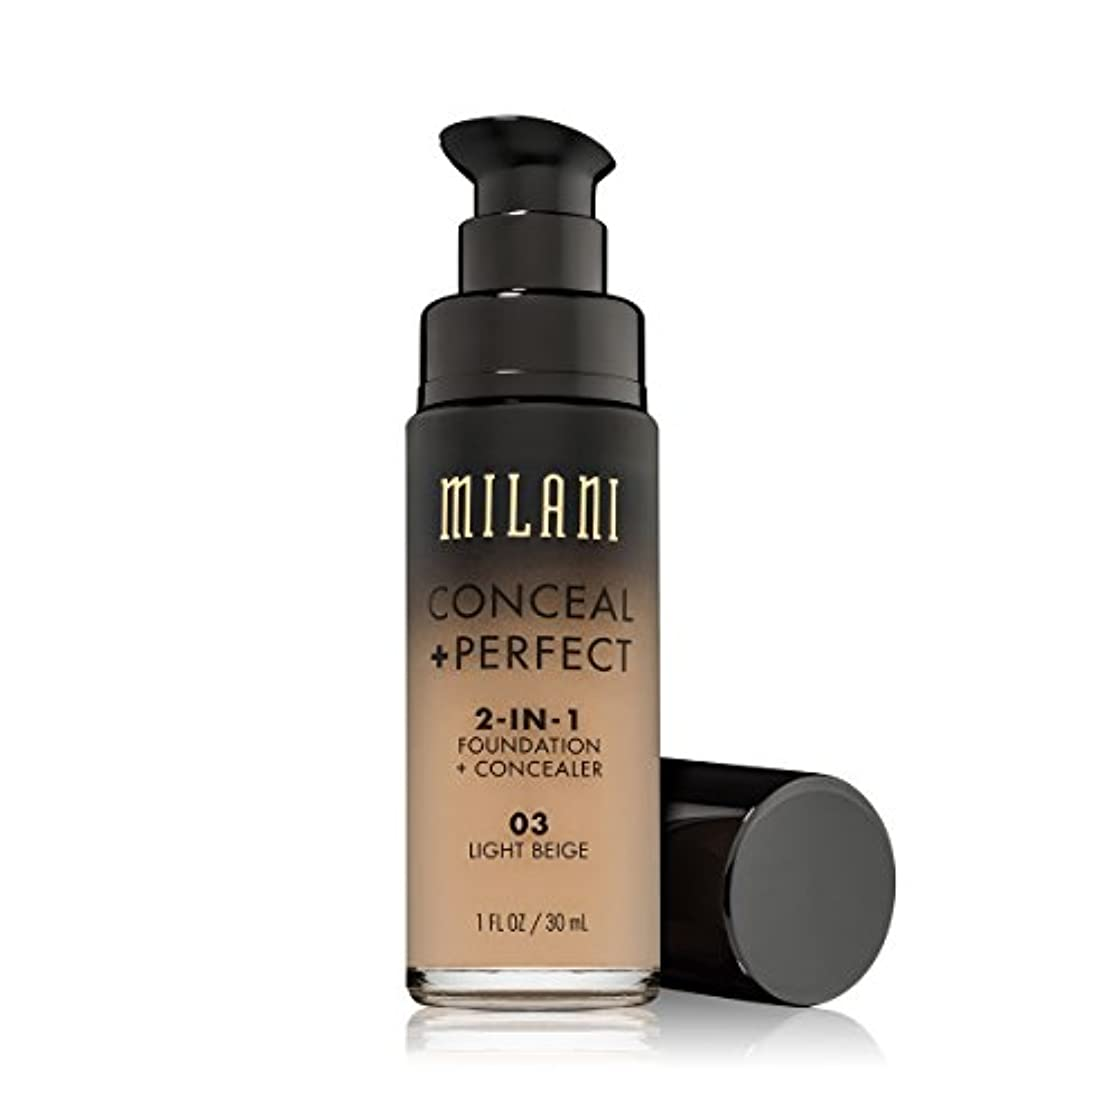 ラショナル記念日上に築きますMILANI Conceal + Perfect 2-In-1 Foundation + Concealer - Light Beige (並行輸入品)